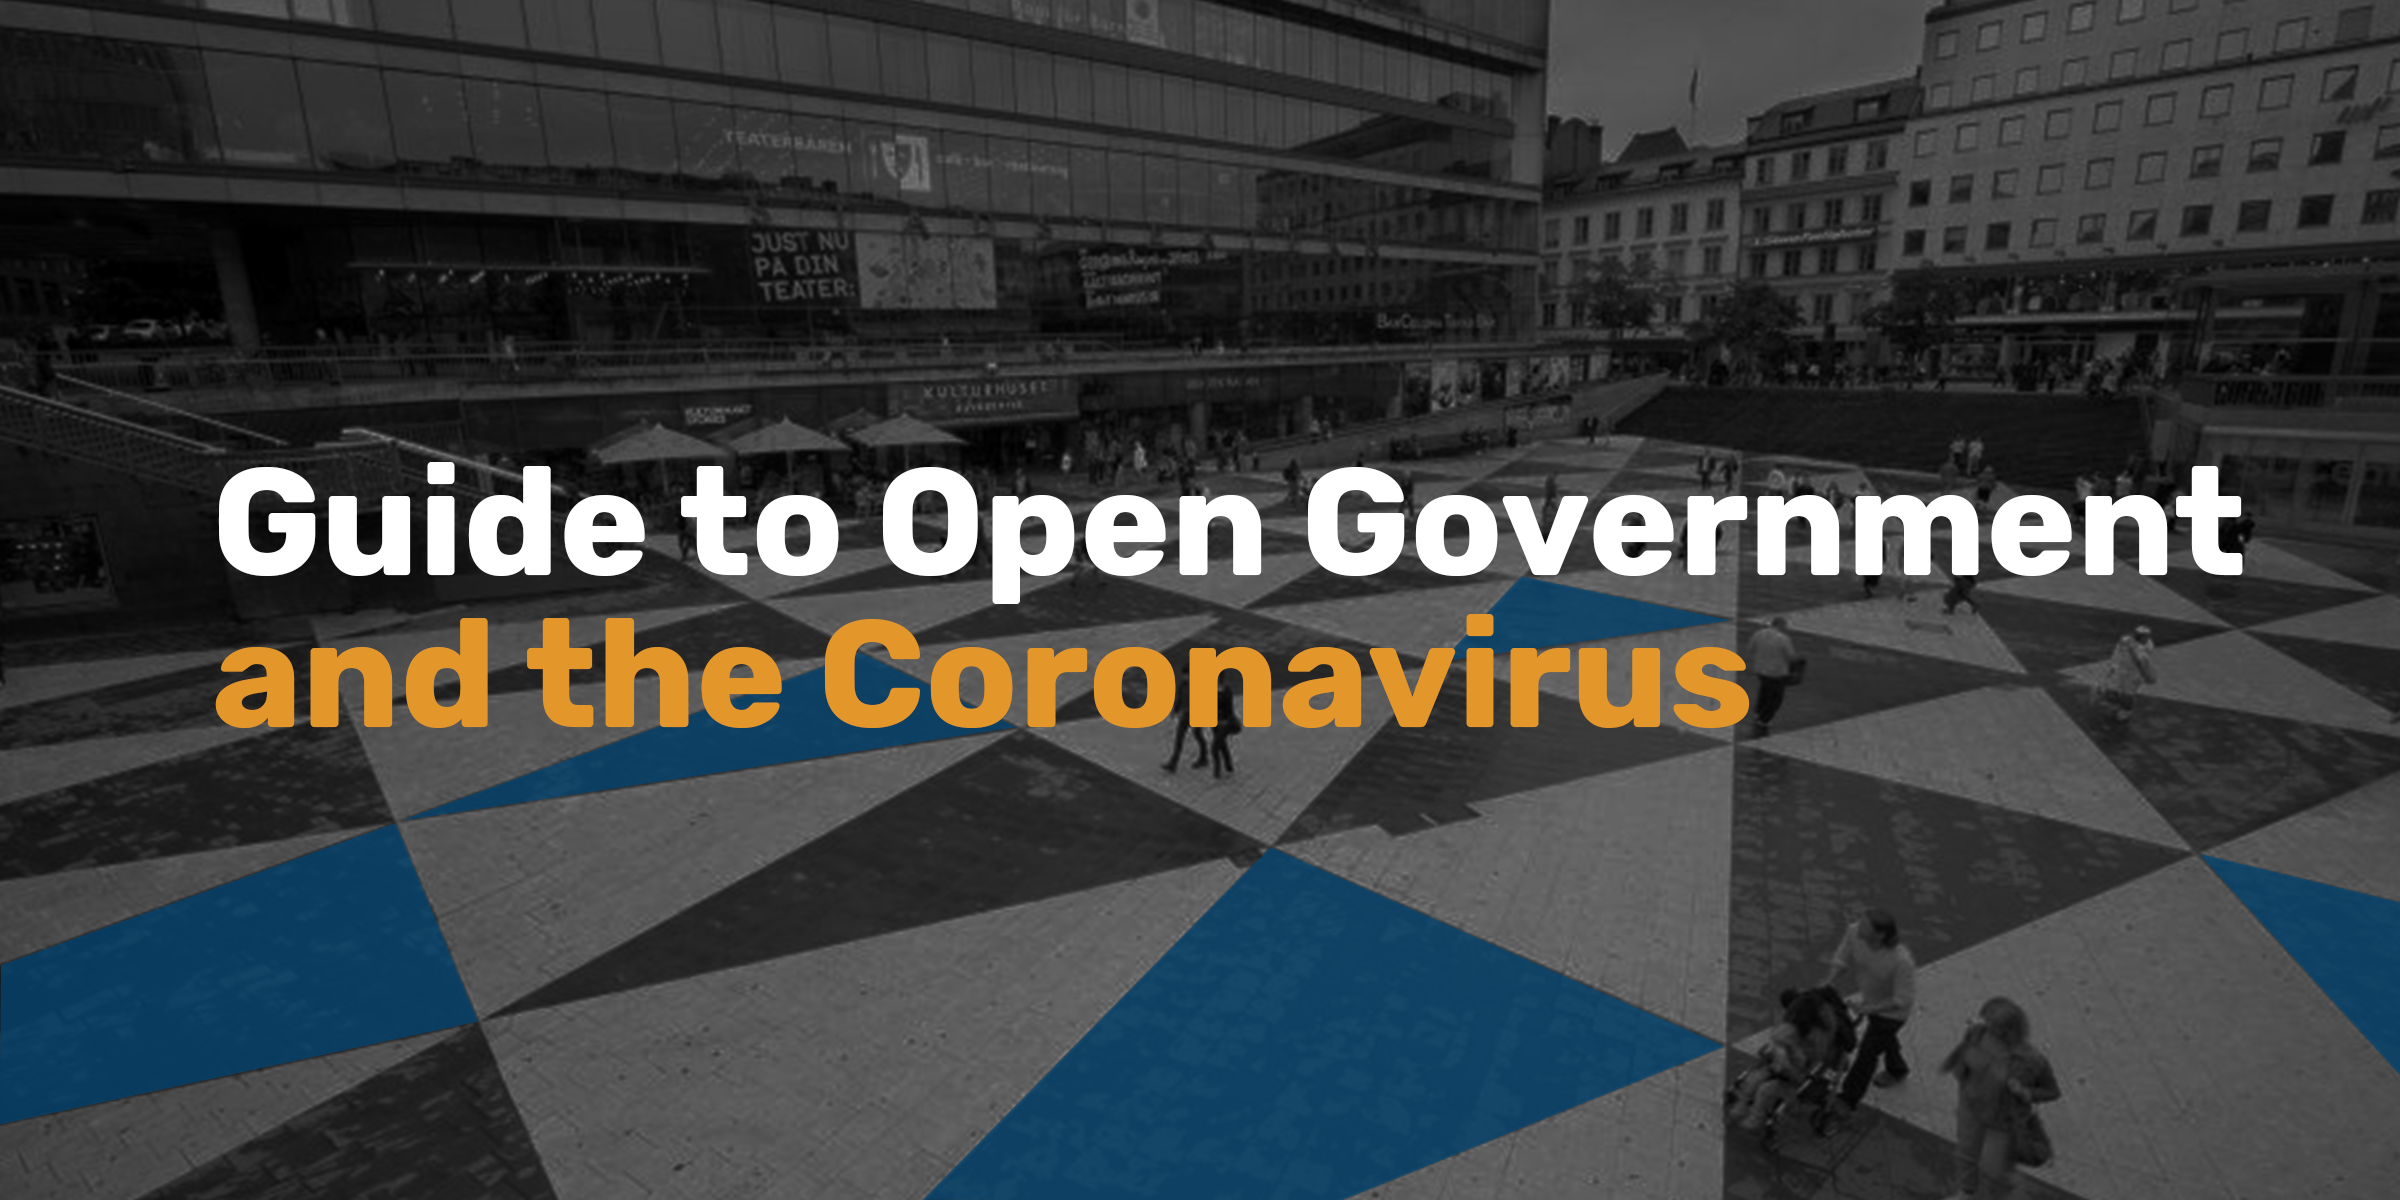 title: A GUIDE TO OPEN GOVERNMENT AND THE CORONAVIRUS